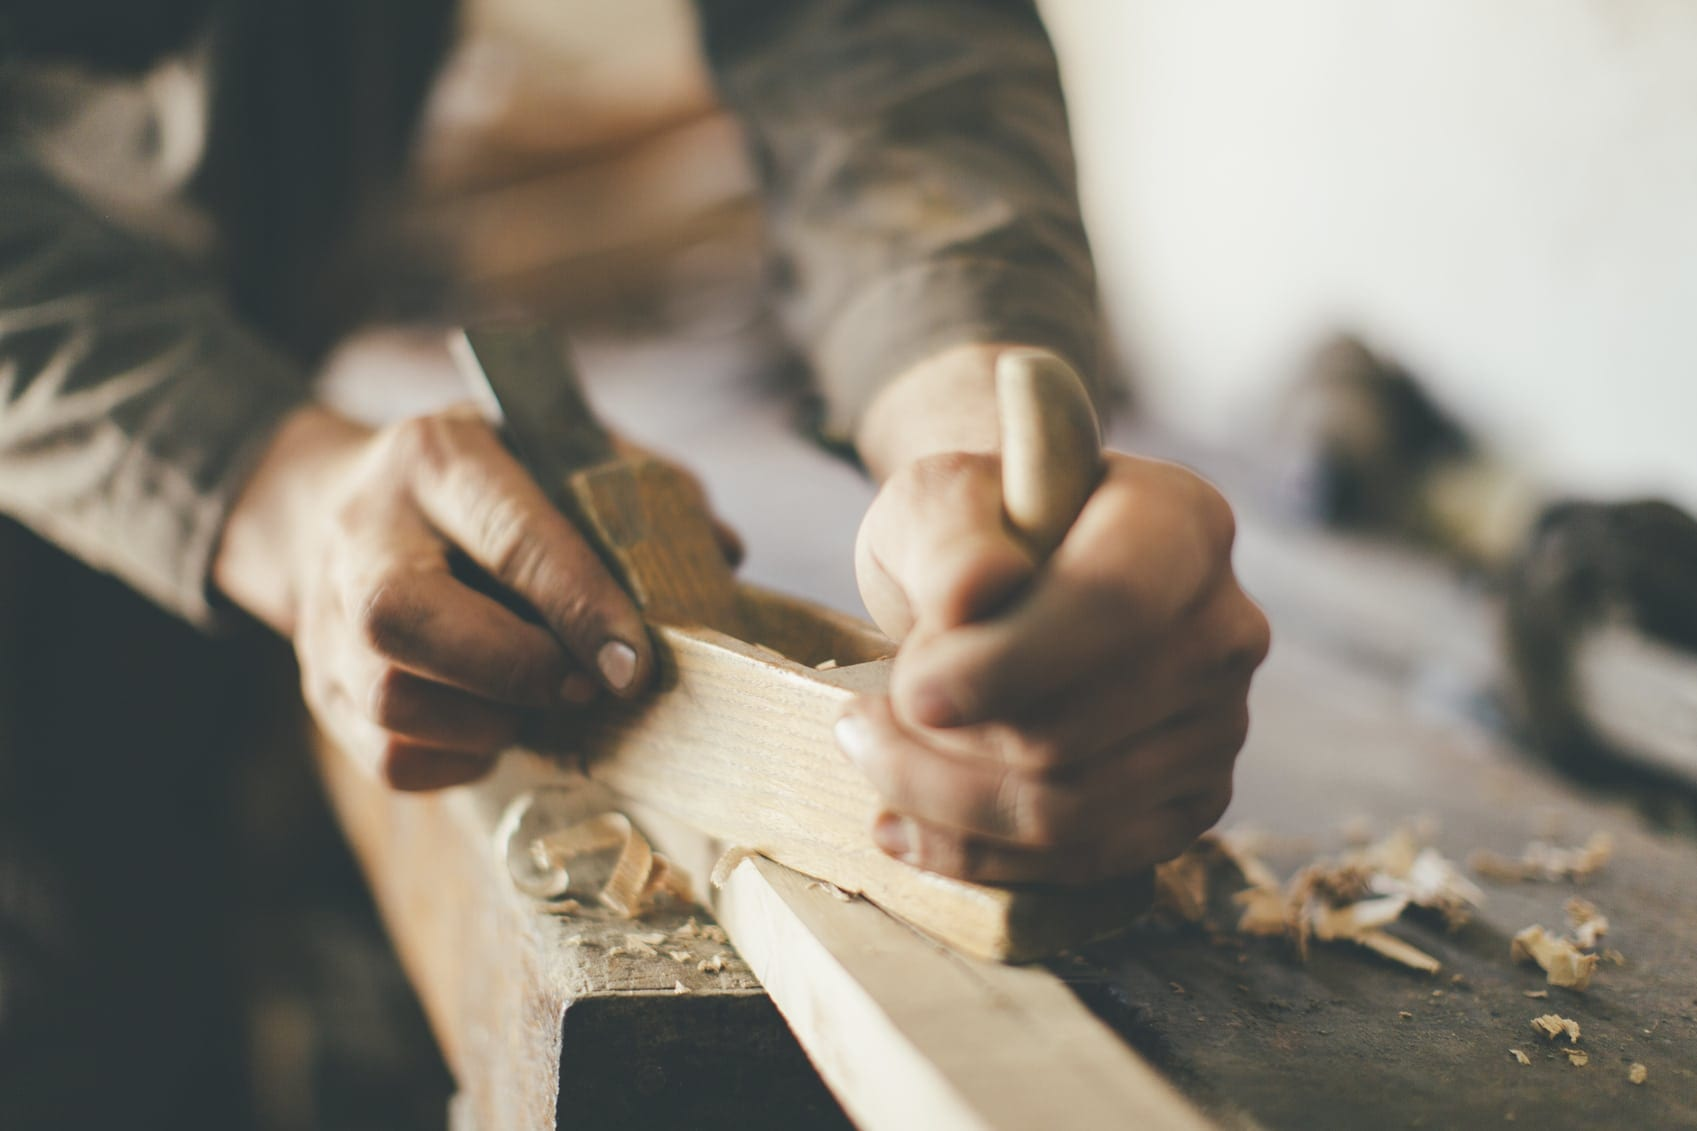 Carpenter Working With Wood Stock Photo